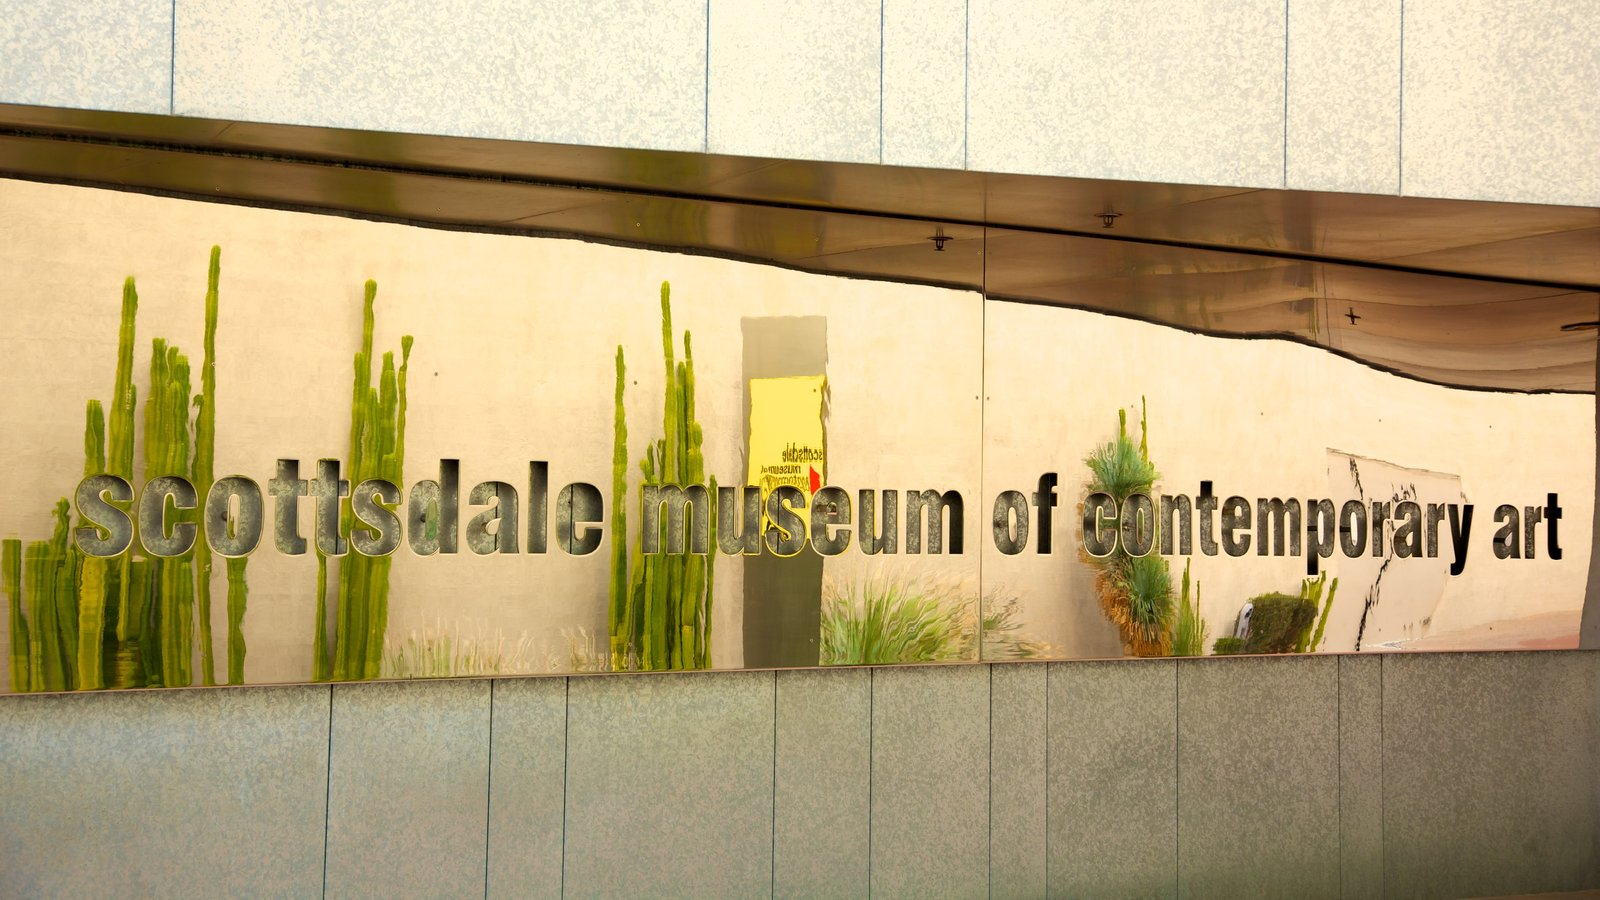 Scottsdale Museum of Contemporary Art showing signage, art and modern architecture